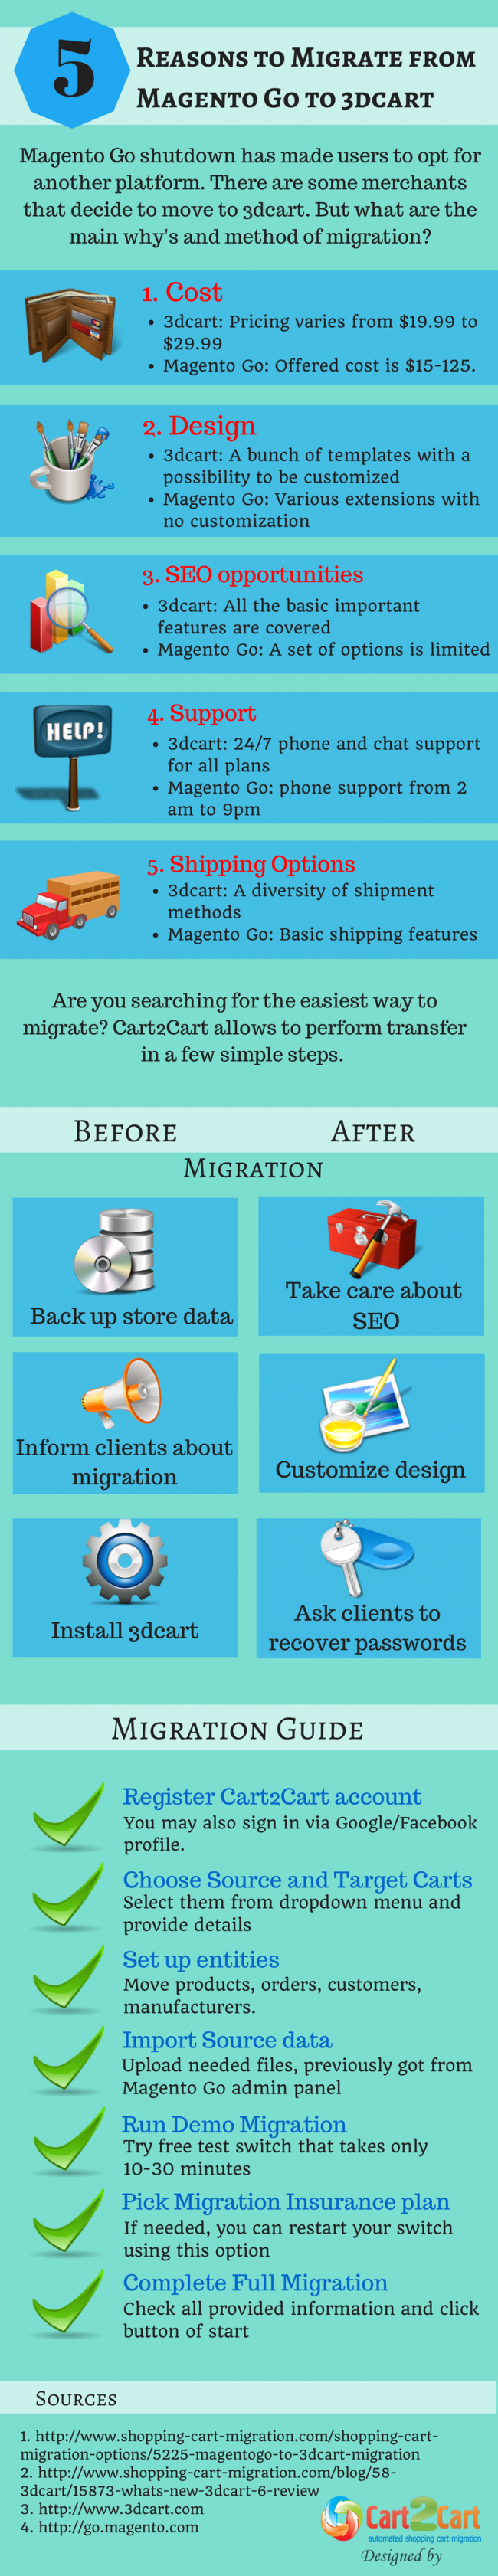 5 Reasons to Migrate from Magento Go to 3dcart